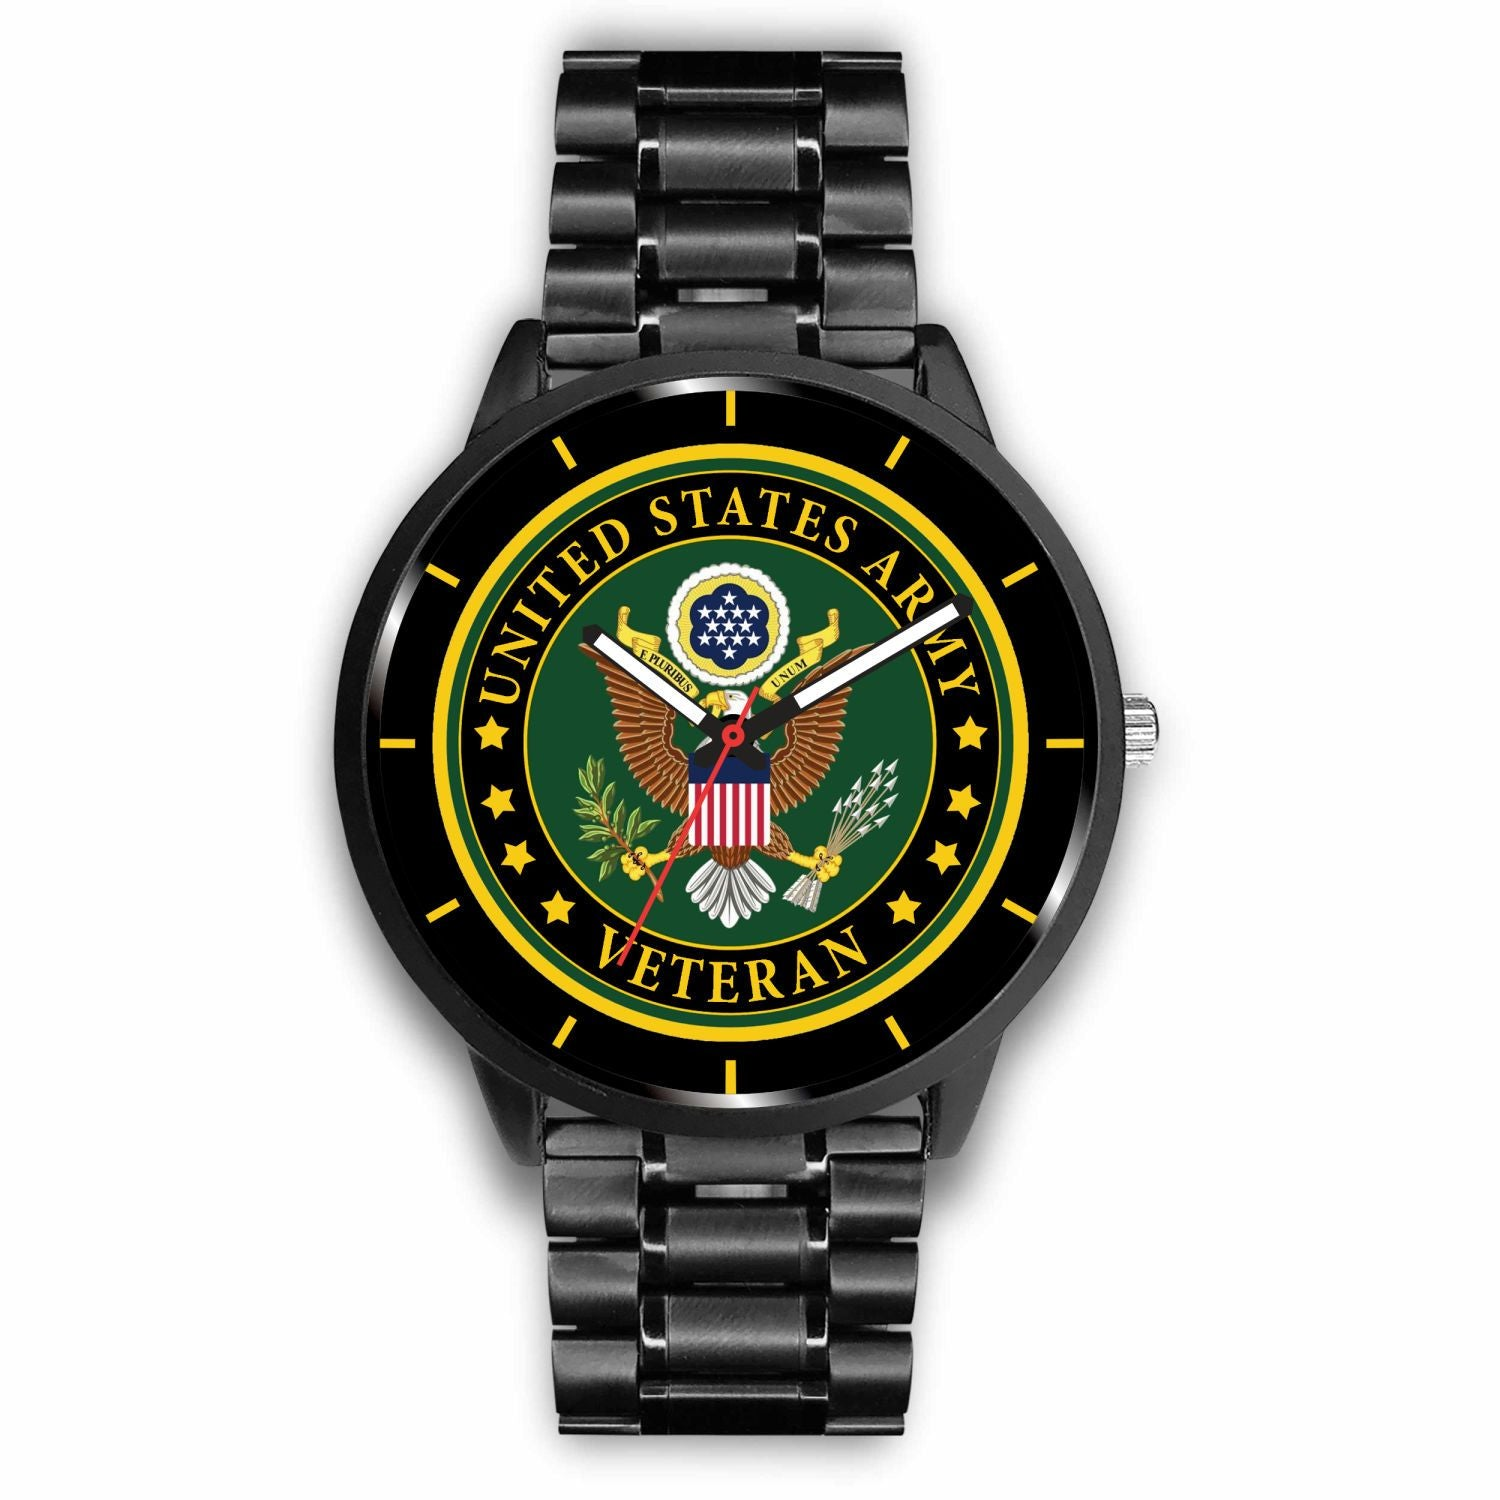 Buy U.S ARMY VETERAN WATCH - Familyloves hoodies t-shirt jacket mug cheapest free shipping 50% off